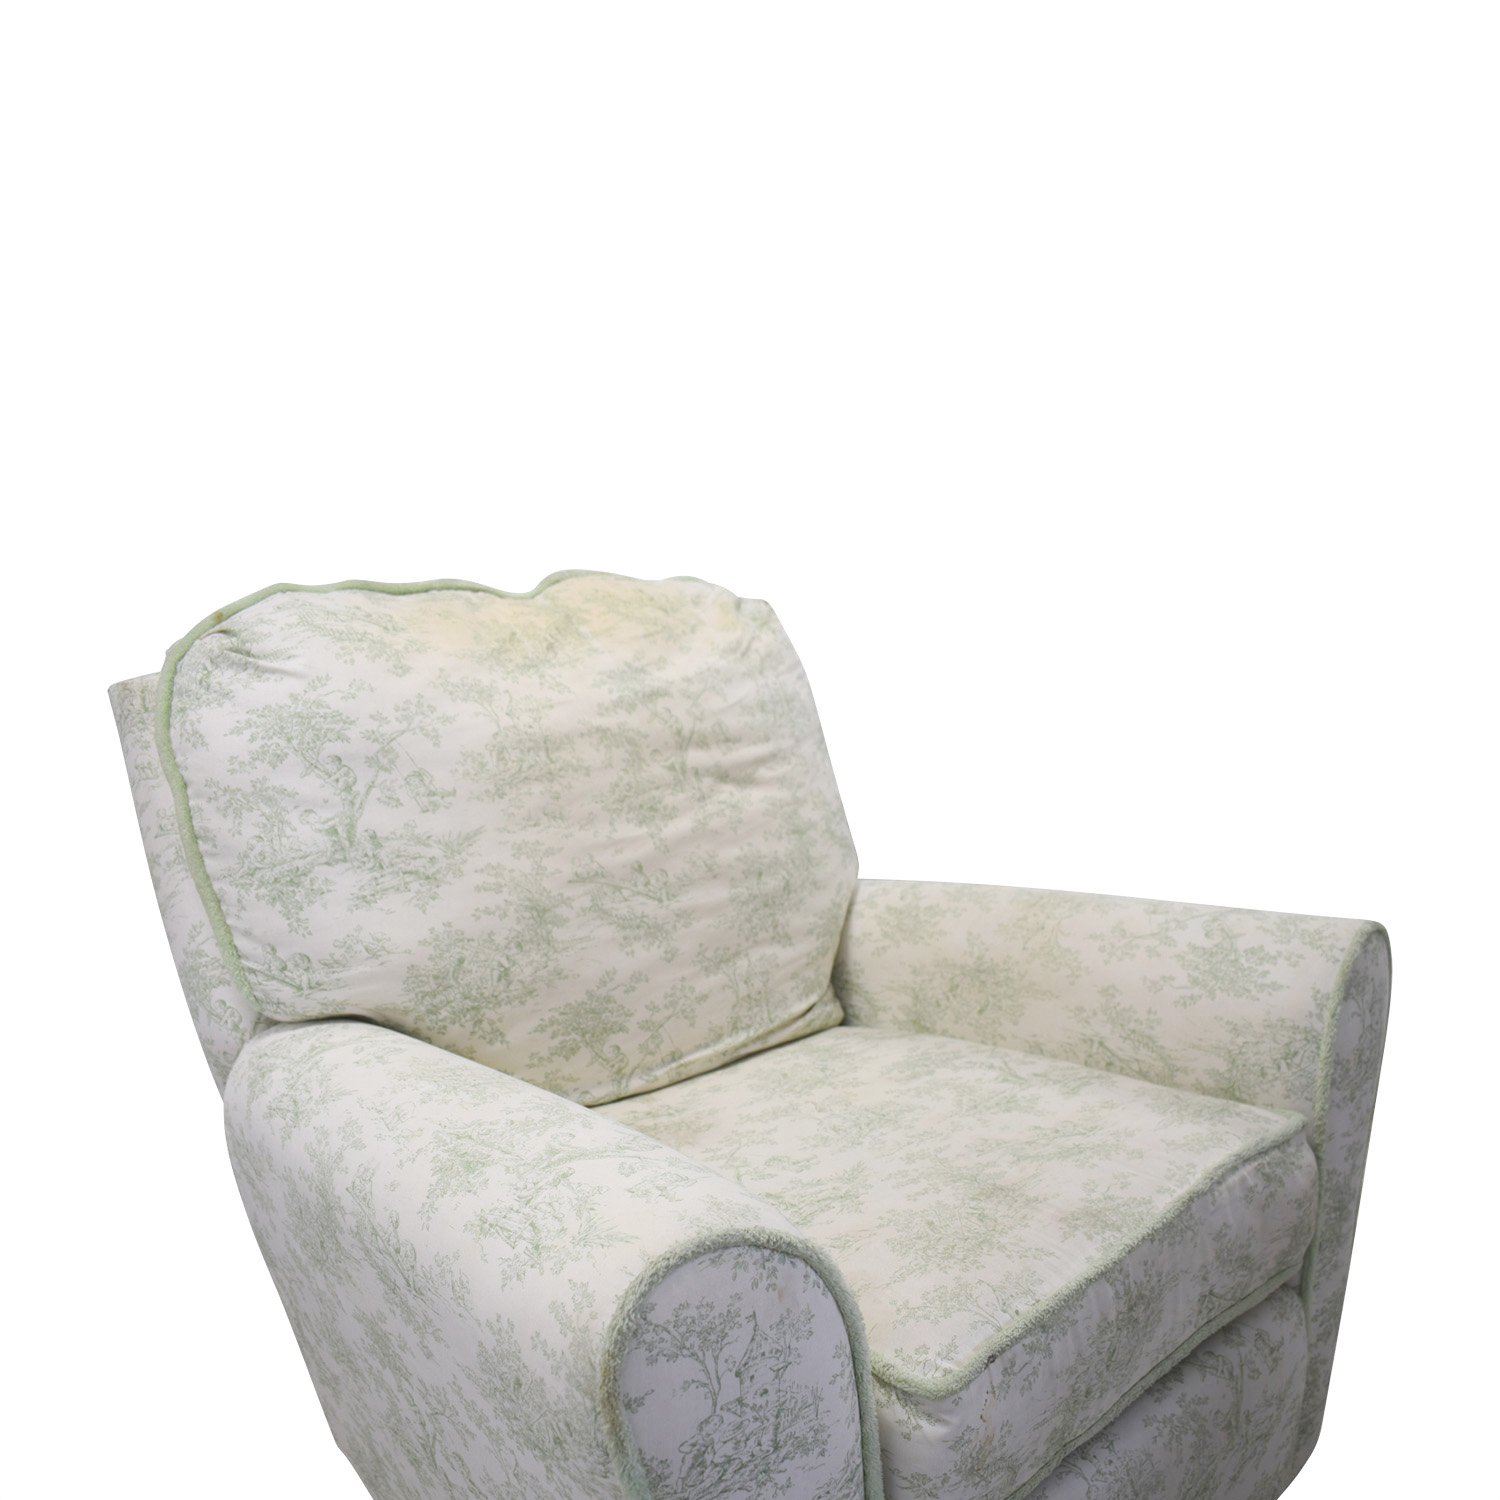 Bellini Baby Bellini Baby Children's Playground White and Green Rocking Chair Recliner for sale